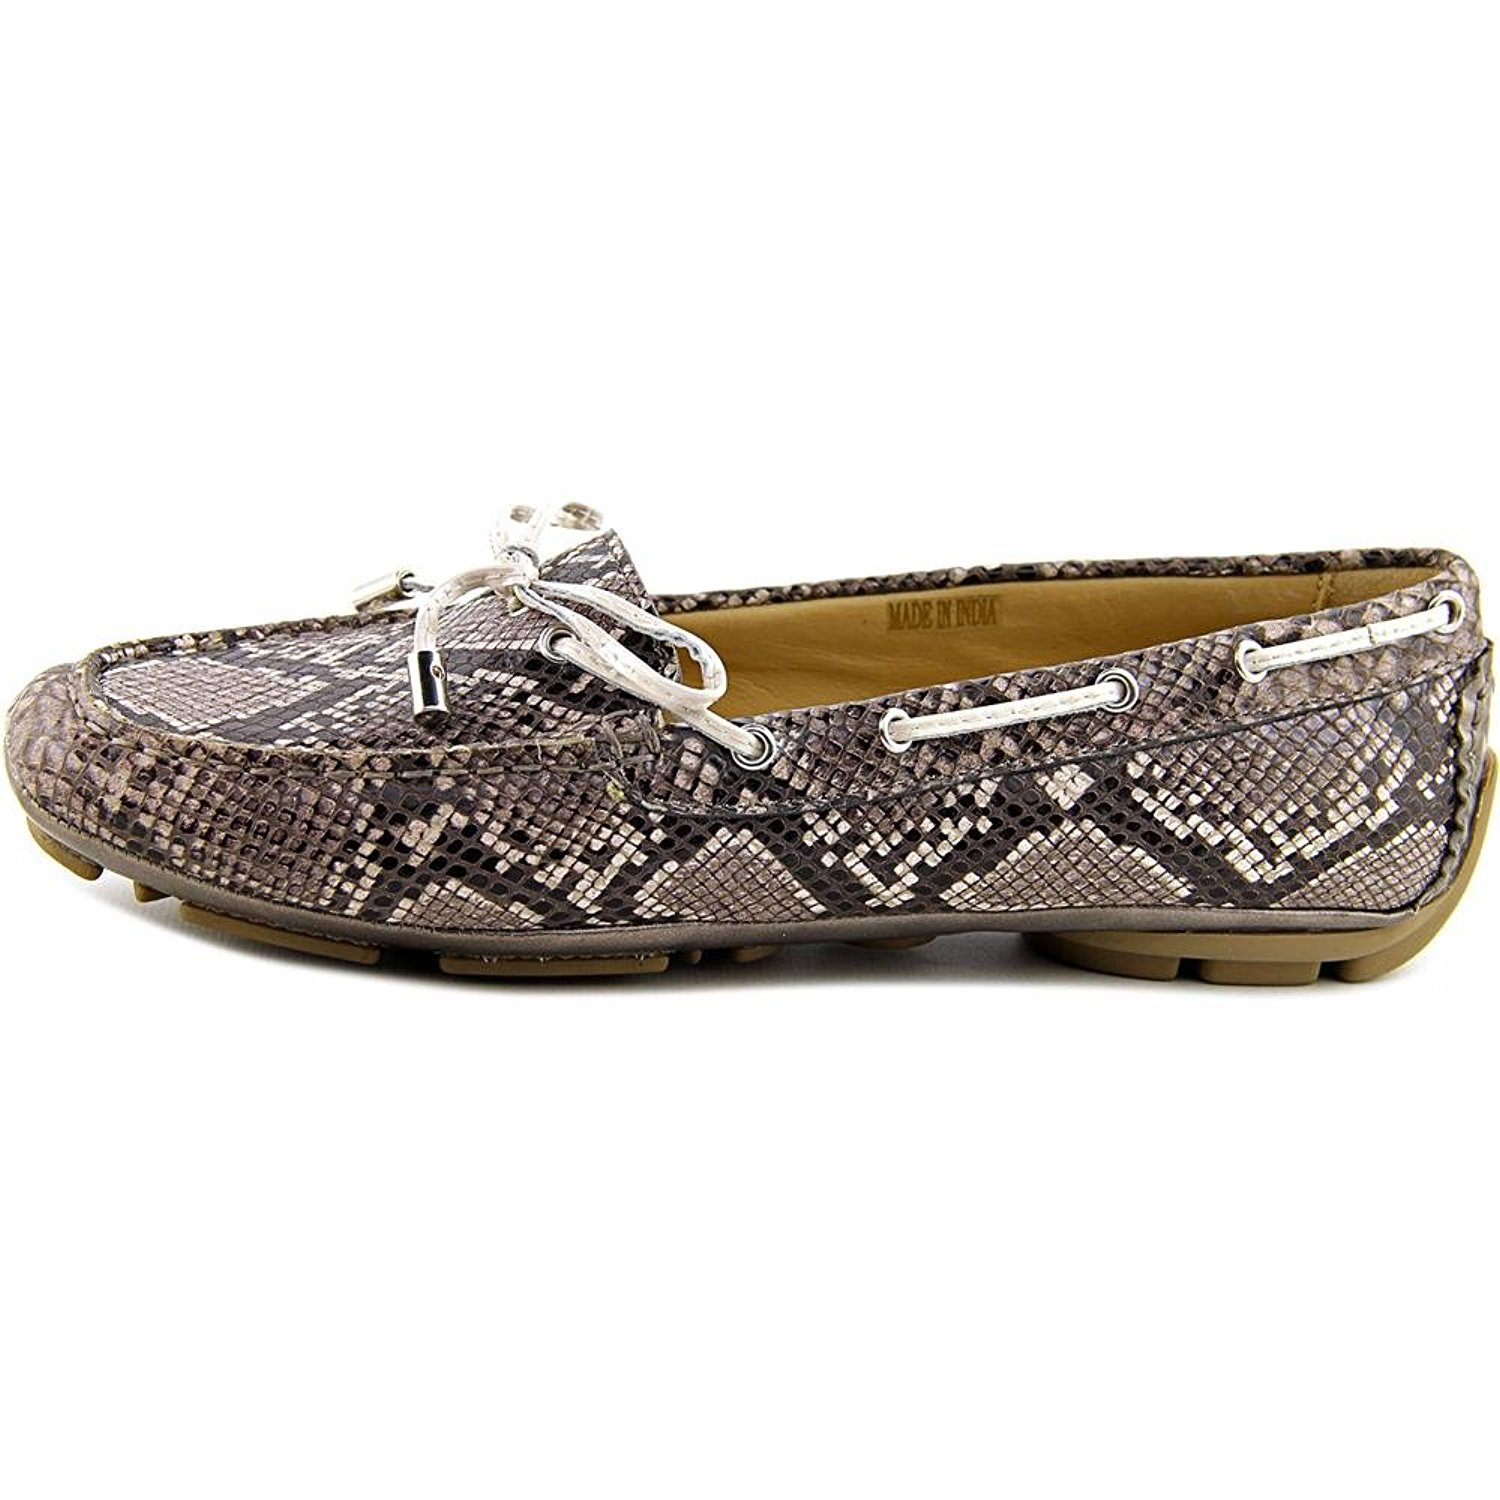 Geox Womens Clelia Square Toe Loafers